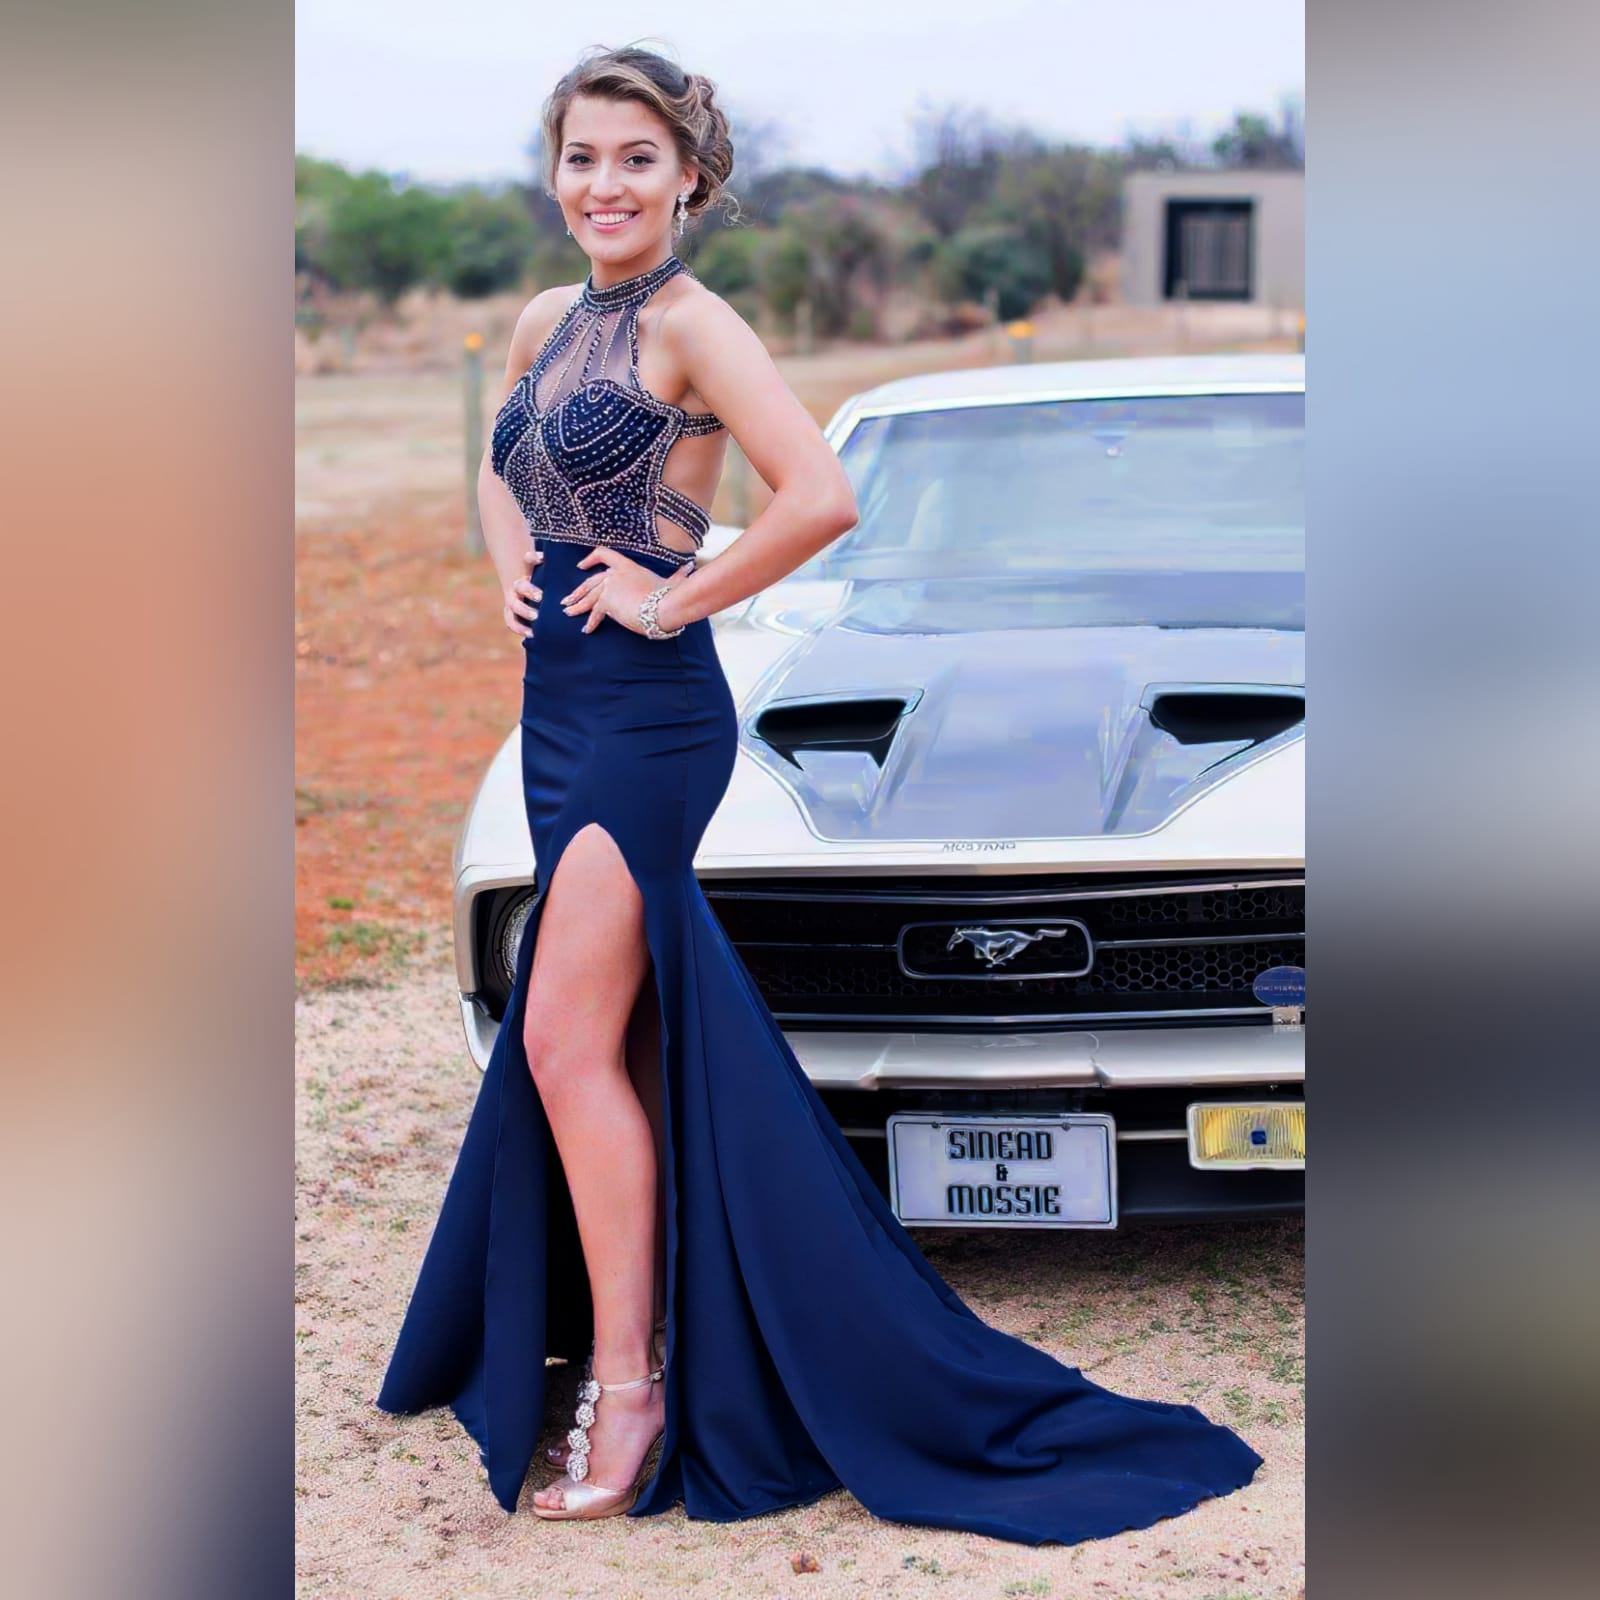 Navy blue silver beaded prom dress 1 navy blue silver beaded prom dress with an illusion neckline and a choker effect. Backless design detailed with beaded straps. Fitted bottom with a slit and a train.